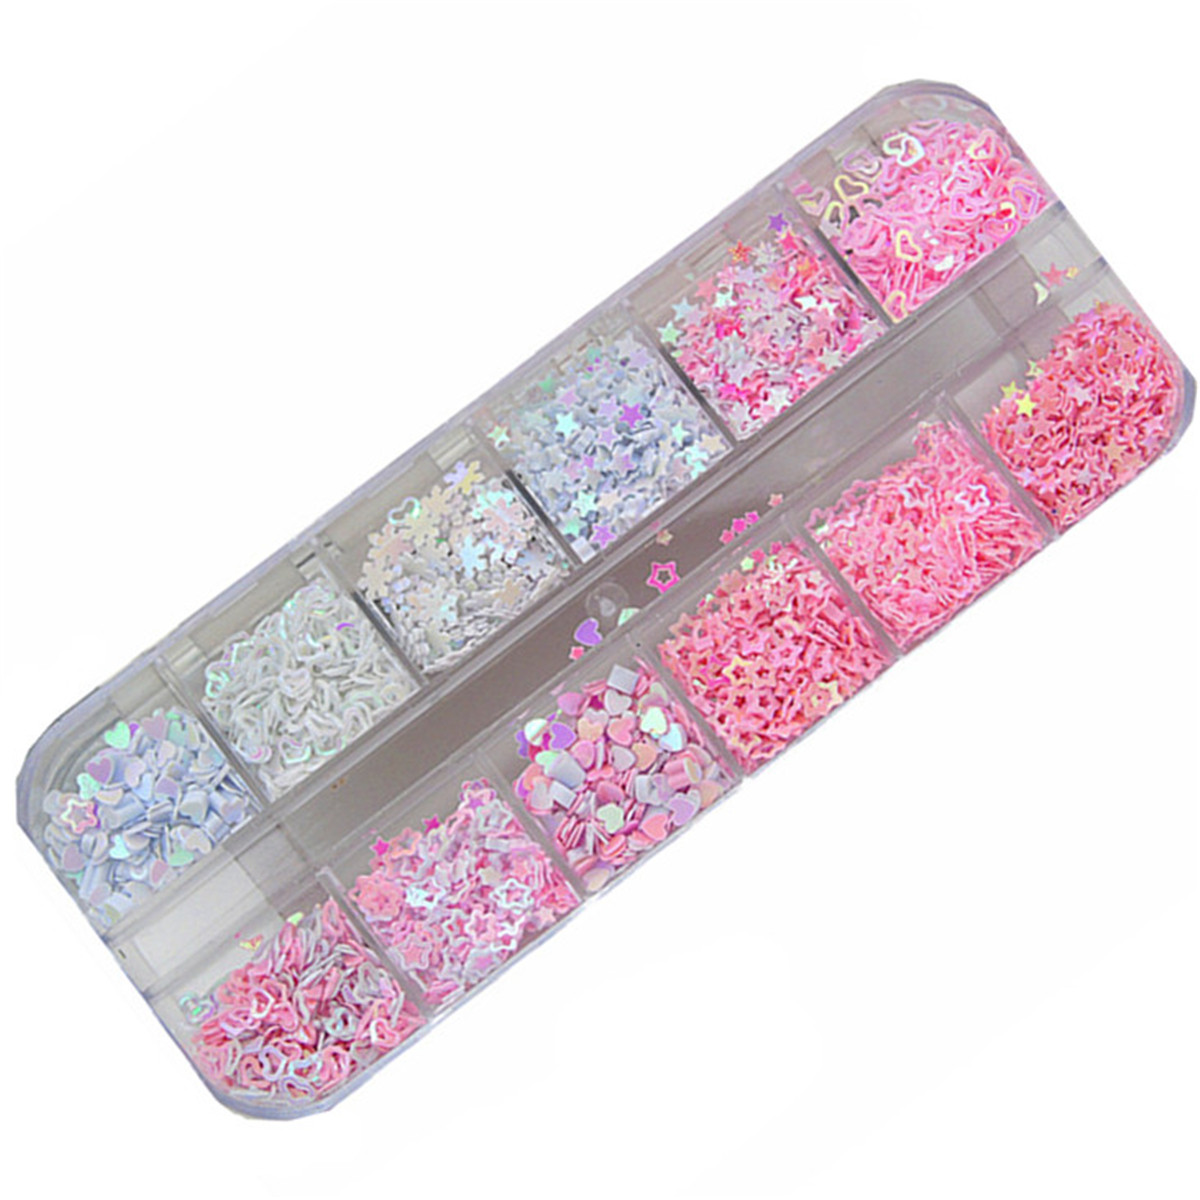 Sequins Holographic Holo Love Star Pink White Nail Body Art Glitter Box Sequin Nails Paillette Flakes Decoration Manicure Tools